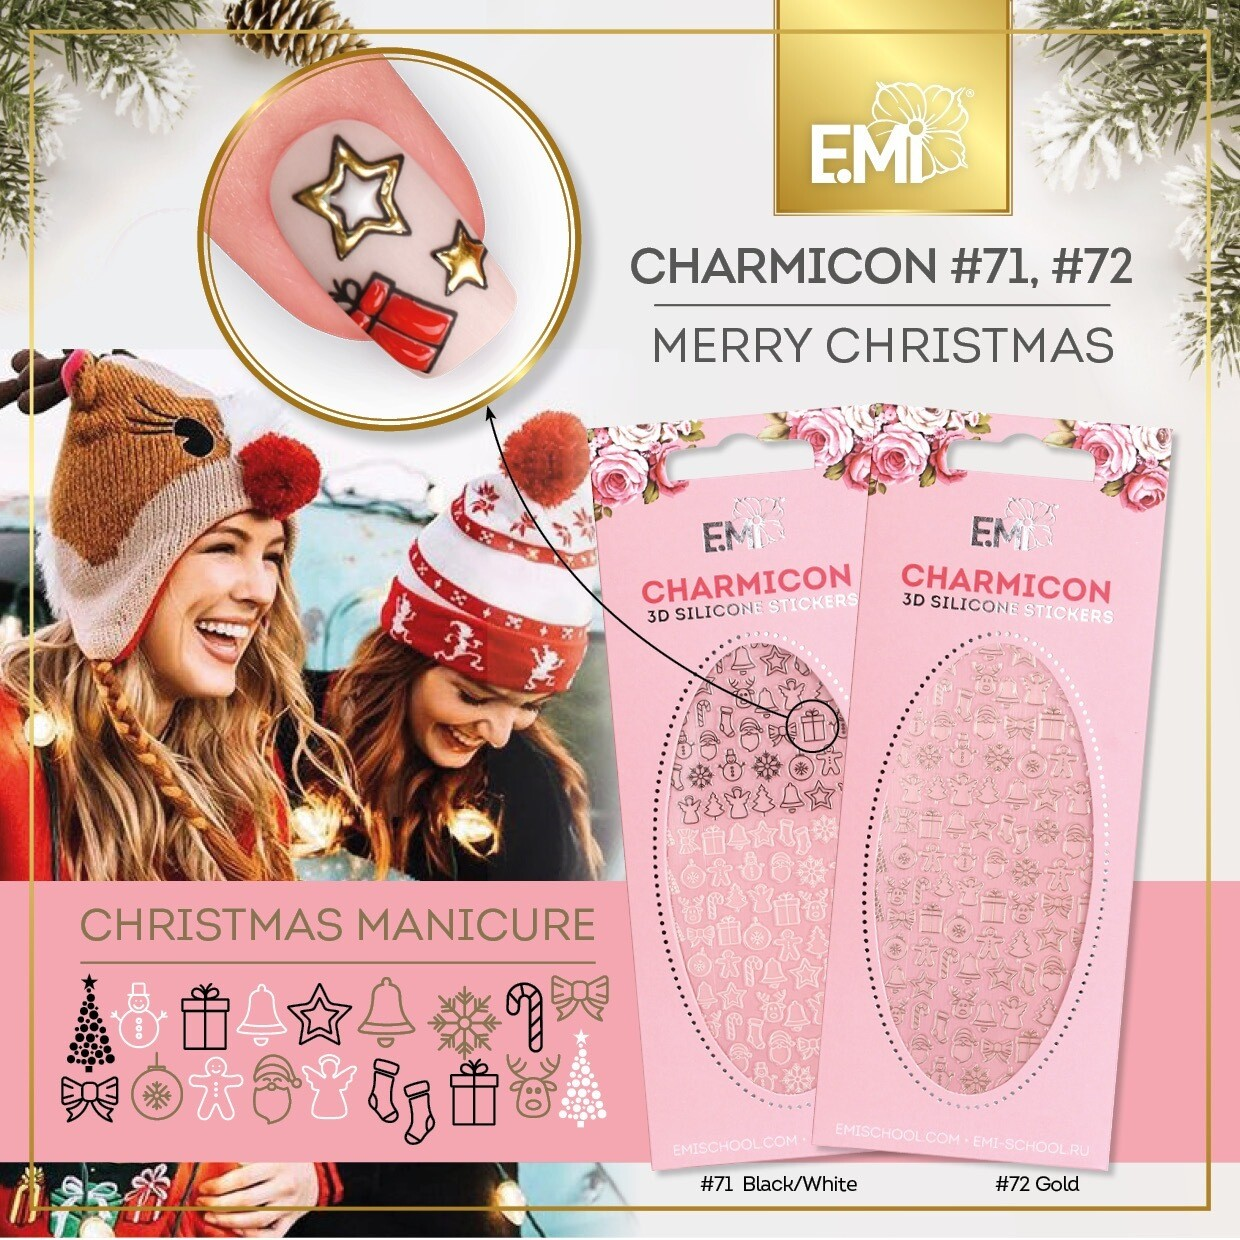 Charmicon Silicone Stickers #71 Merry Christmas BLACK/WHITE